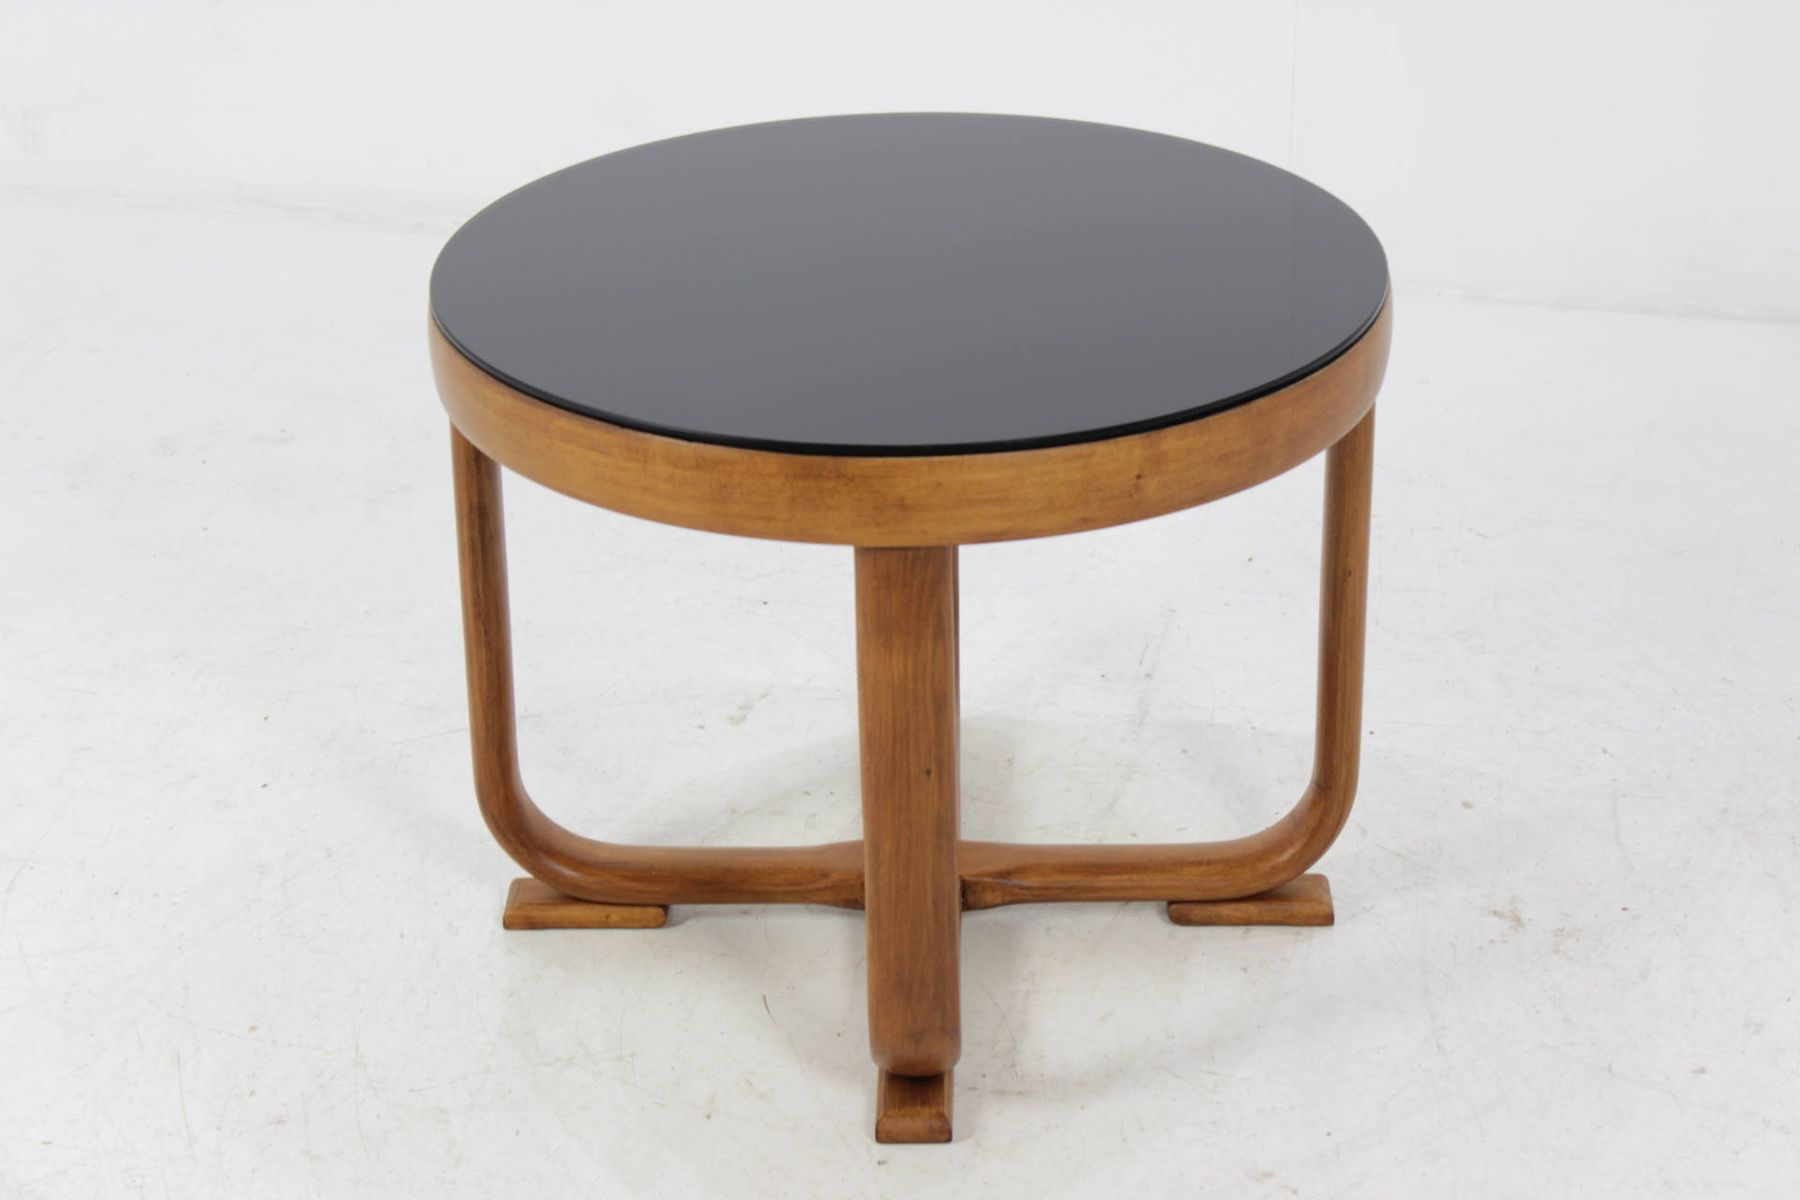 ... Bentwood Coffee Table, 1940s 9. $1,109.00. Price Per Piece